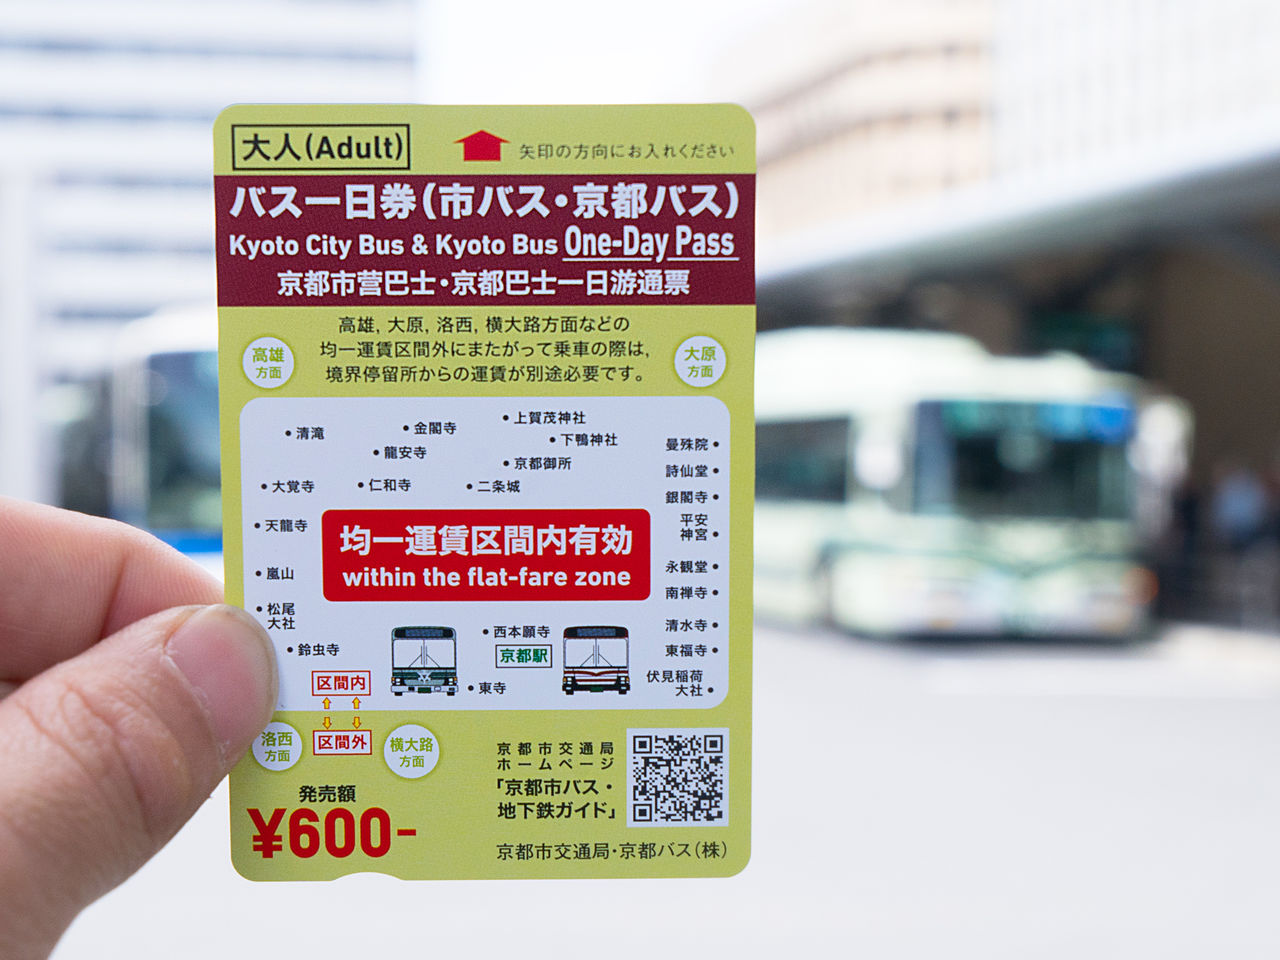 Kyoto One-day bus pass